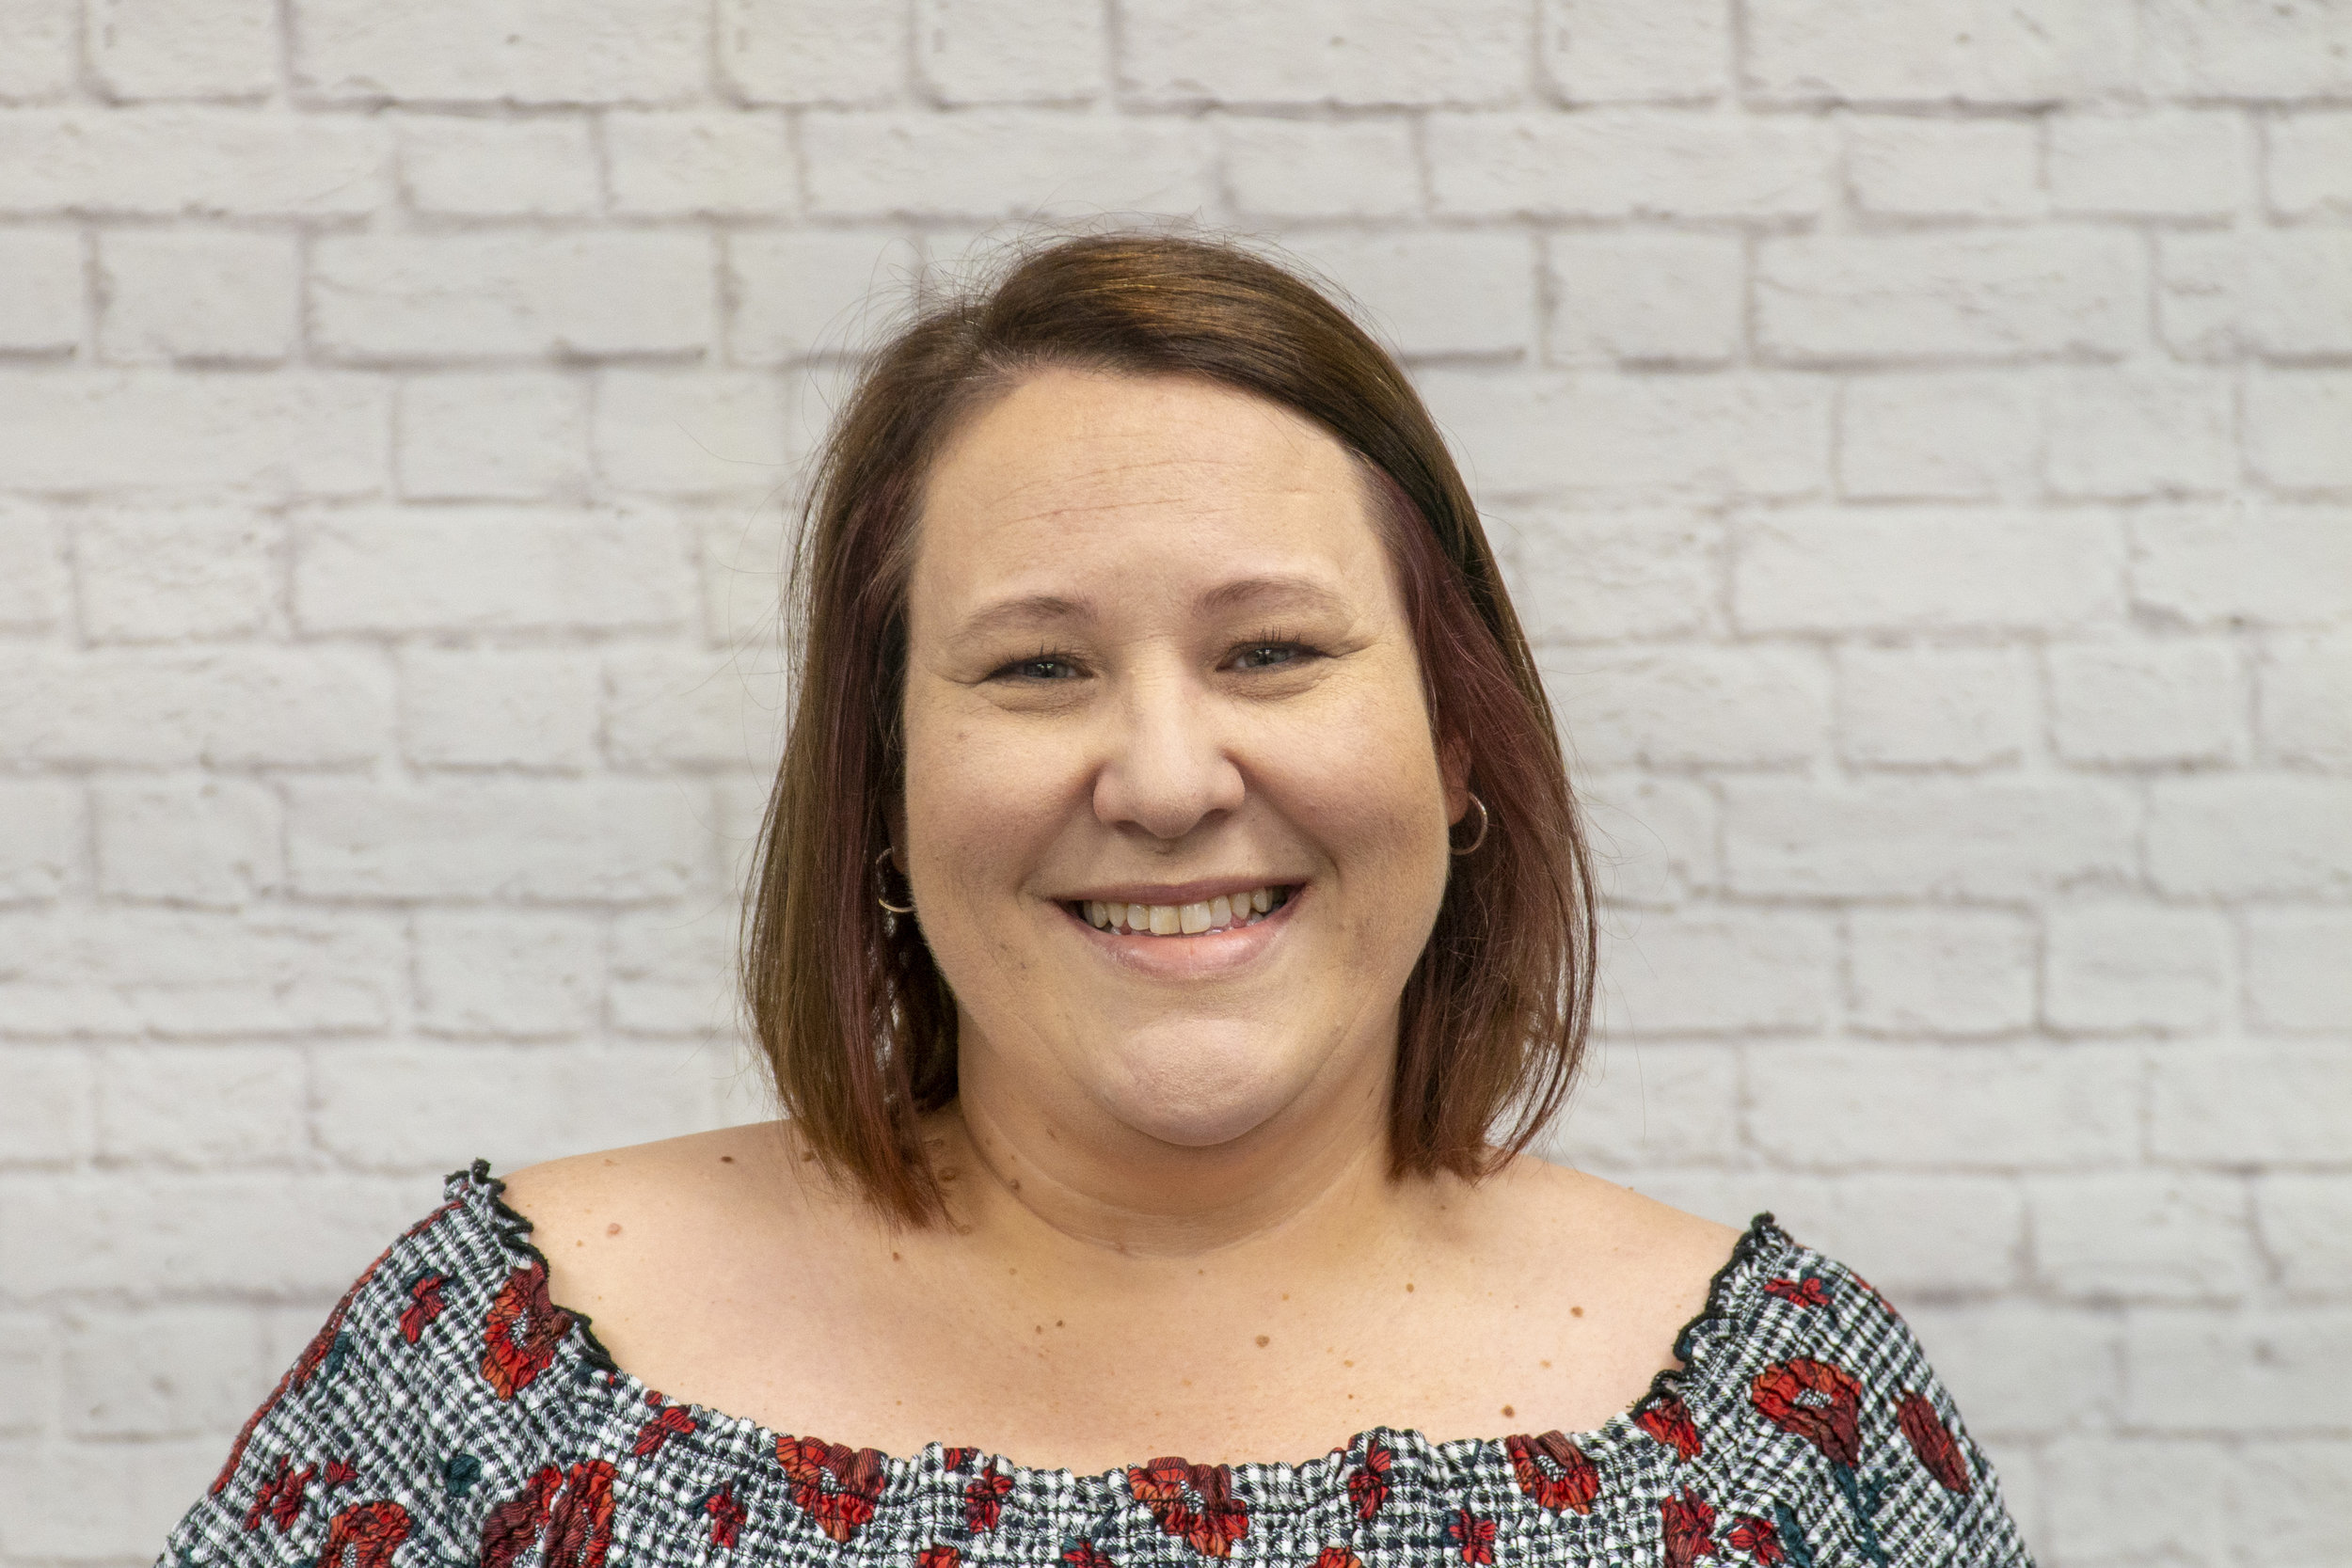 Kate Haggar - Children's Ministry & Primary SRE AdvisorSouth Sydney & Georges River RegionKate has been involved in youth and children's ministry for over 10 years. She has been a children's minister, as well as an SRE teacher and coordinator. Mobile / 0437 778 961Email / kate.haggar@youthworks.net